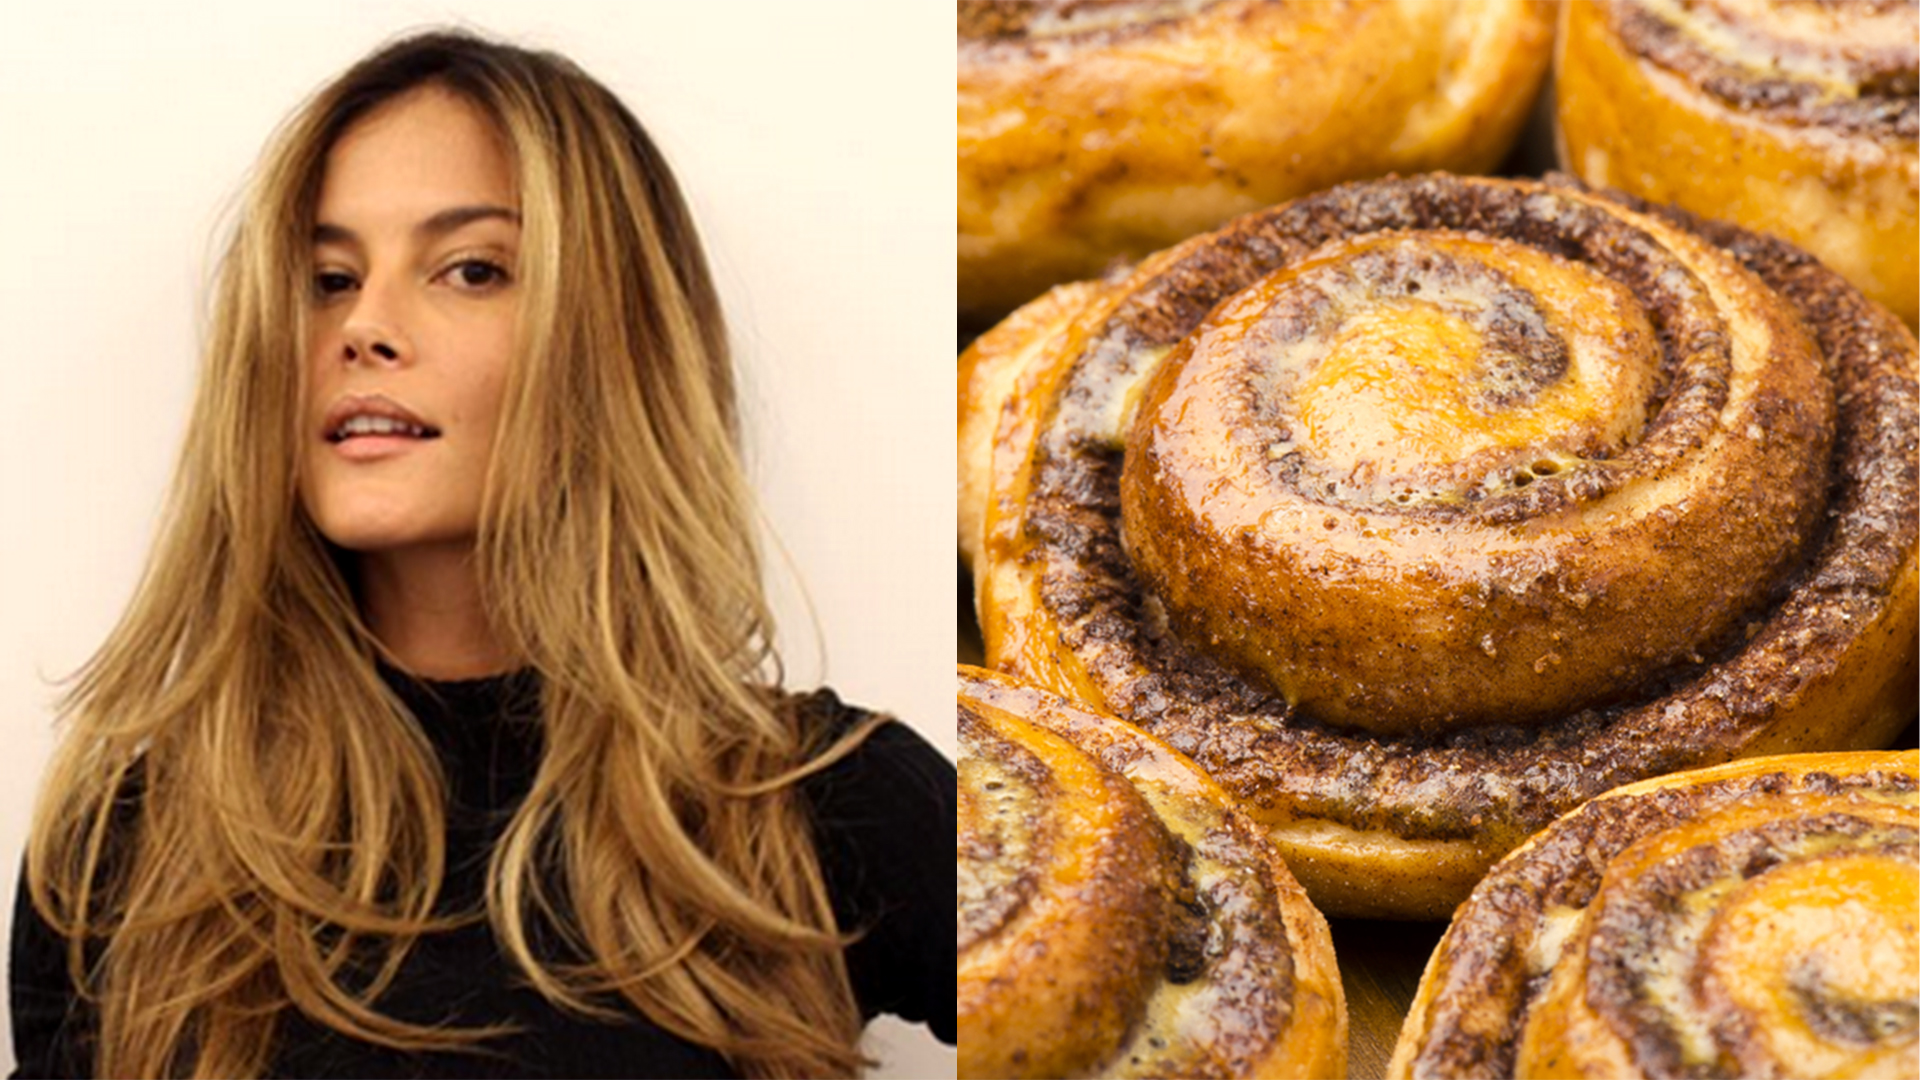 Homemade Rose Food Cinnamon Swirl Hair Is Latest Trend Spicing Up Women S